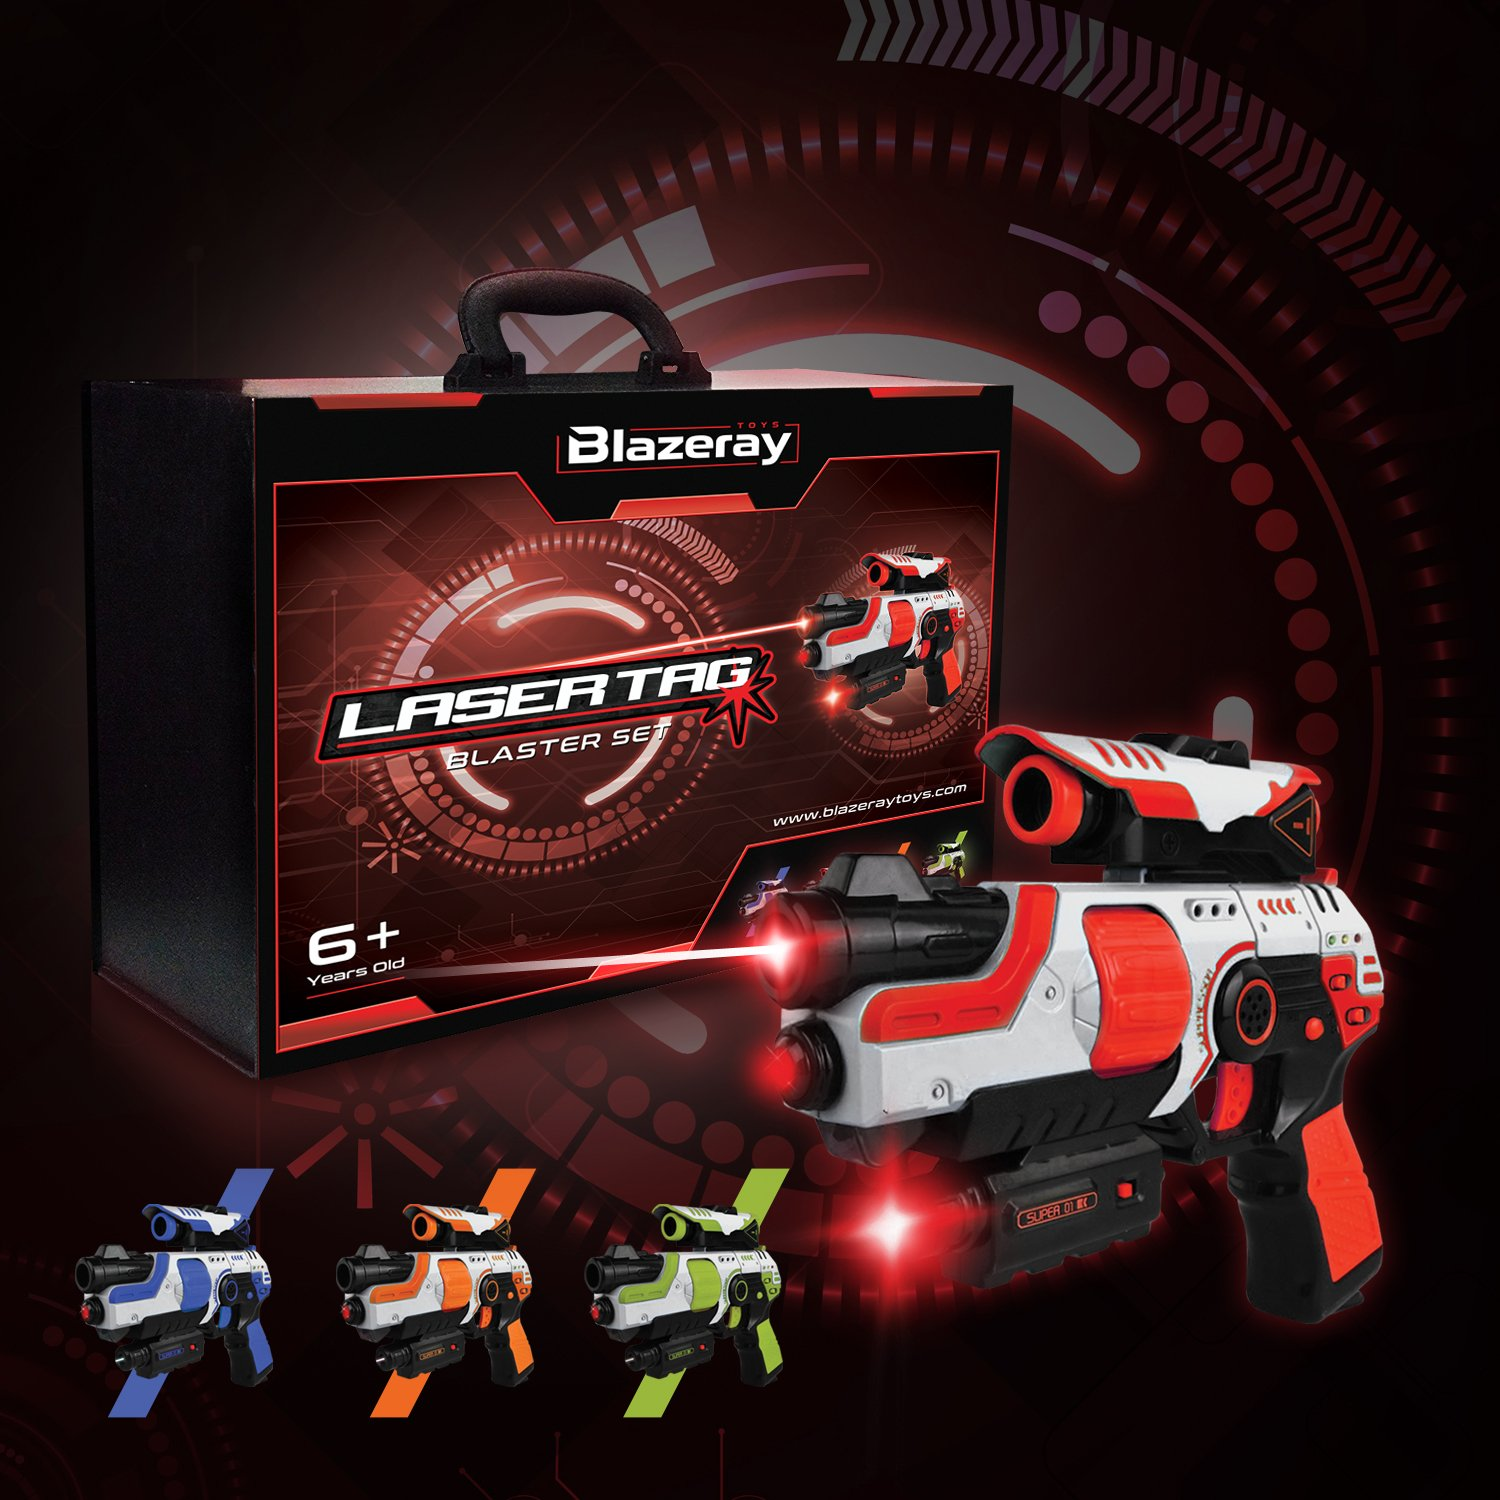 Lazer Tag Gun Set Game Two To Four Player Laser For Kids Voucher Whatsapp Blast Indoor And Outdoor Family Games Supermarket